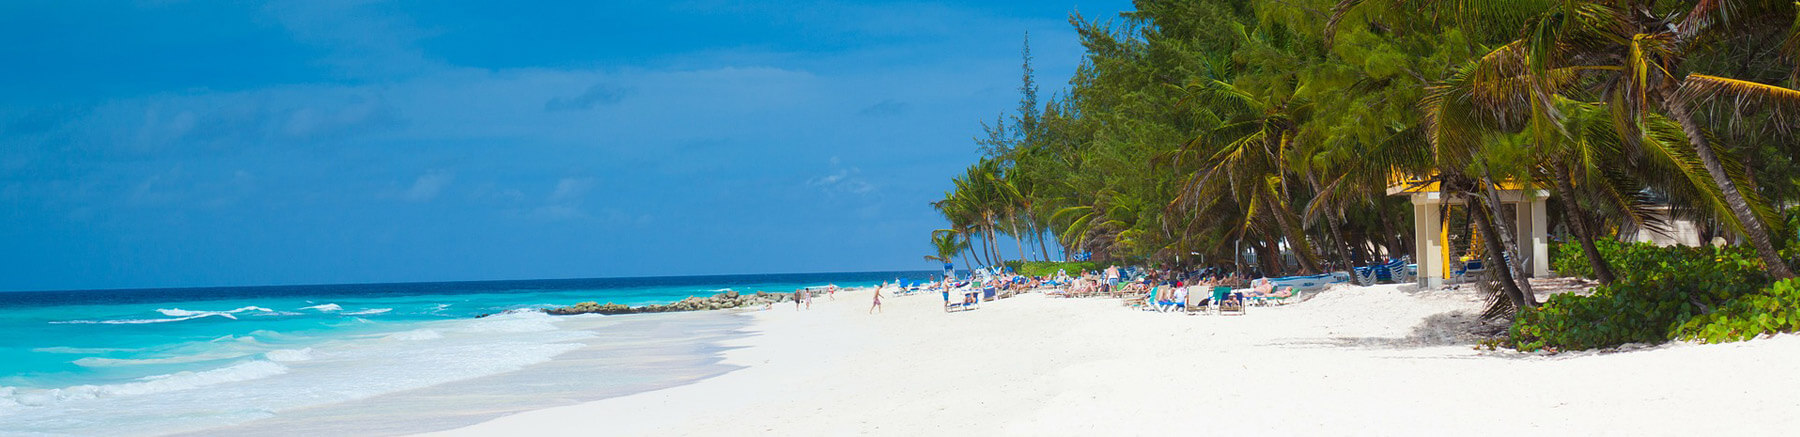 Beautiful white sand and turquoise water beach in Barbados with palm trees and some tourists